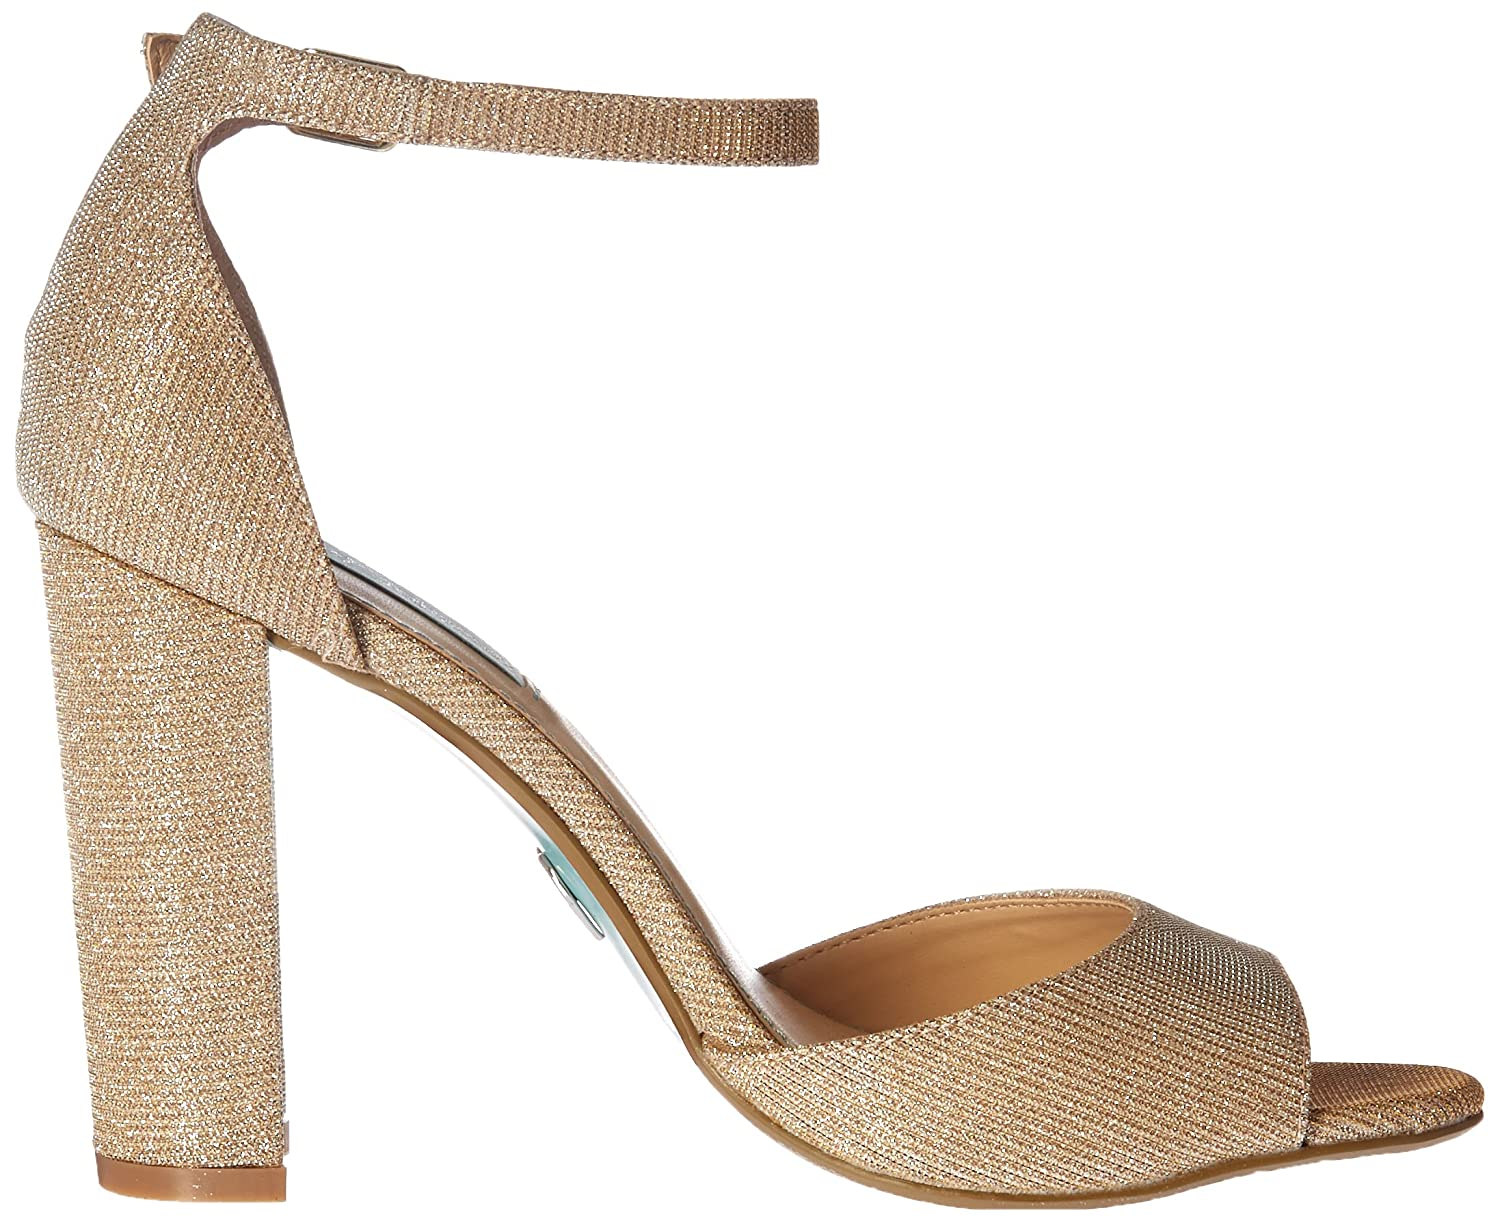 Betsey Johnson Blue Women's Sb-Carly Dress Sandal B(M) B0198WKLJK 7 B(M) Sandal US|Gold 773dcd